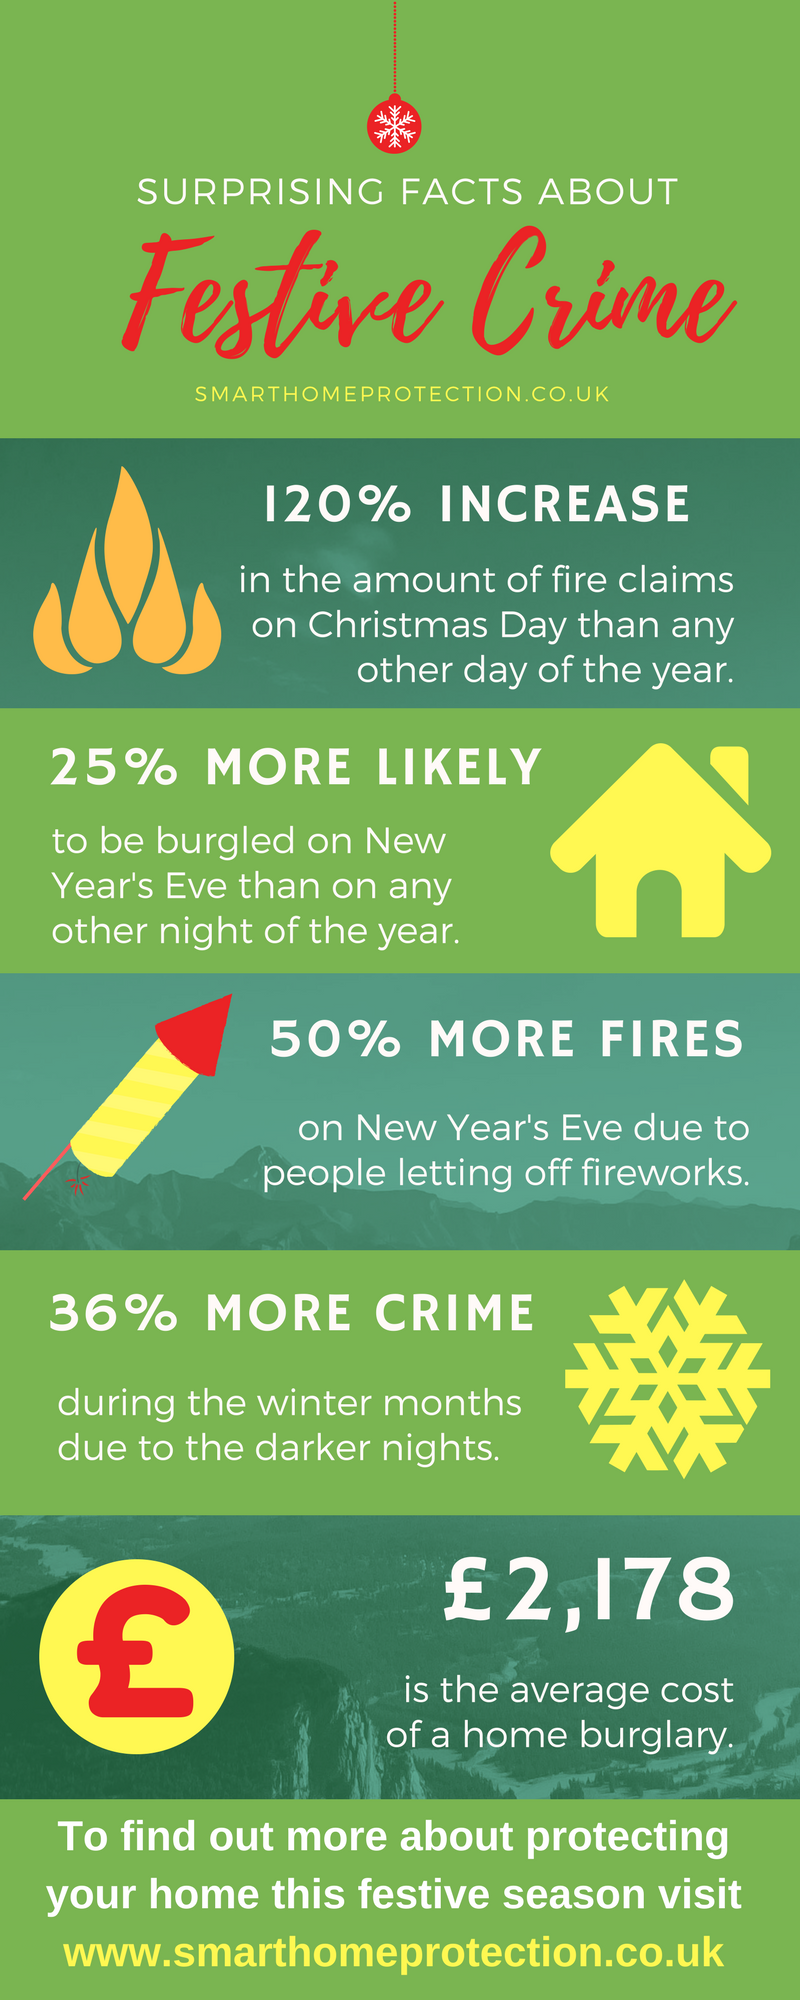 Festive crime - surprising facts you may not know